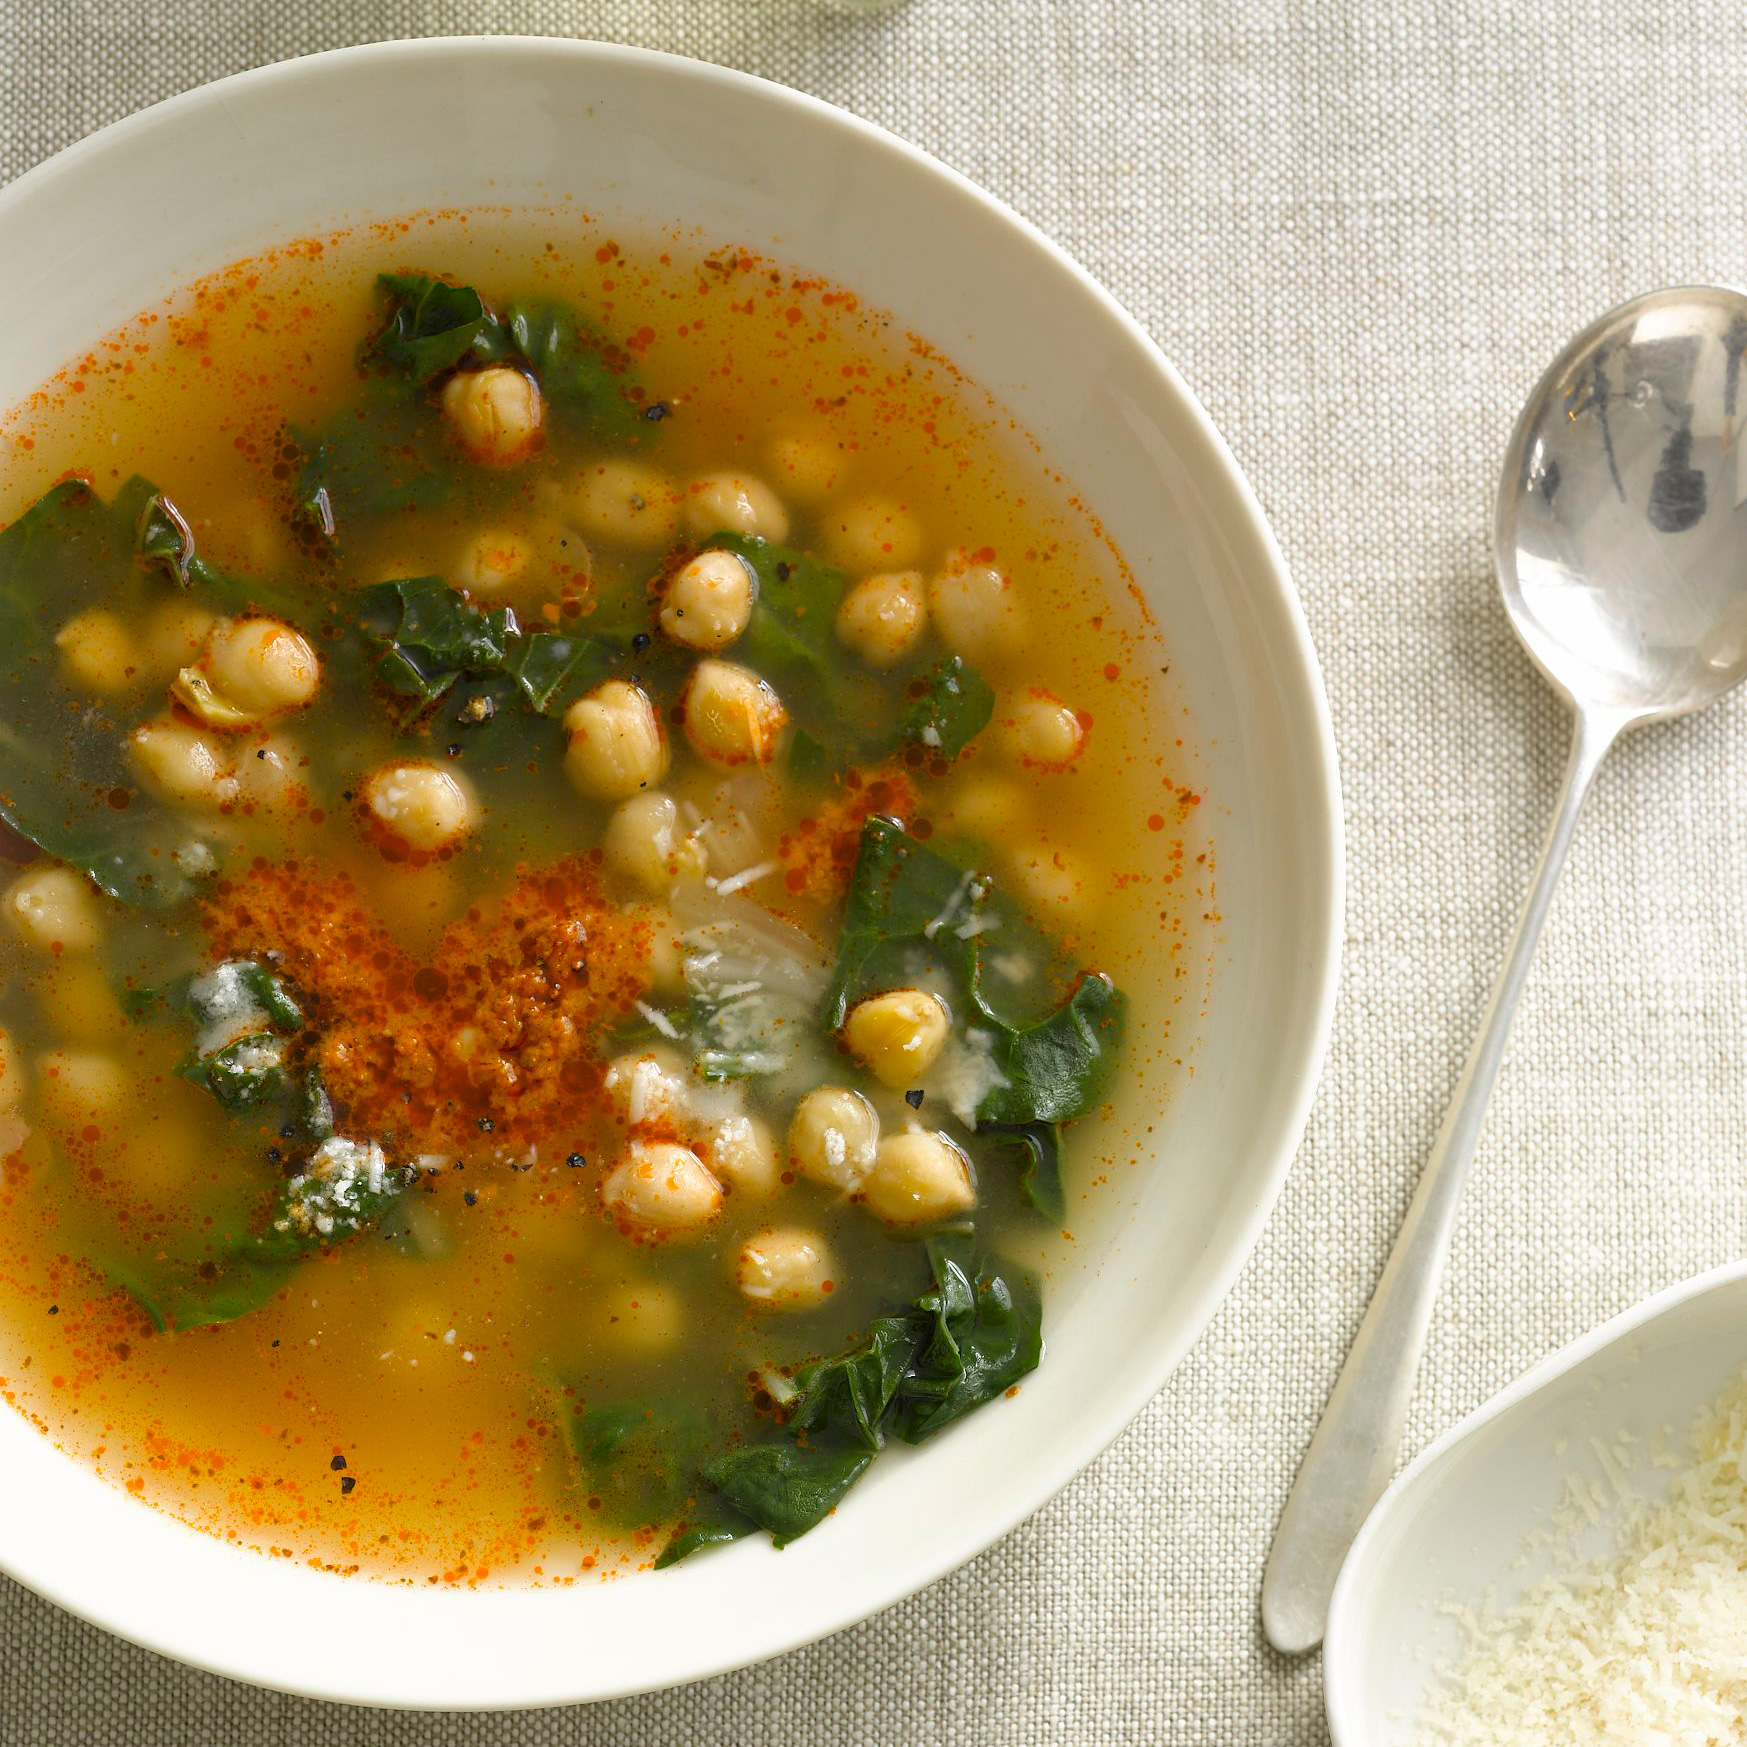 Chickpeas and Swiss Chard in Parmesan-and-Sun-Dried-Tomato Broth